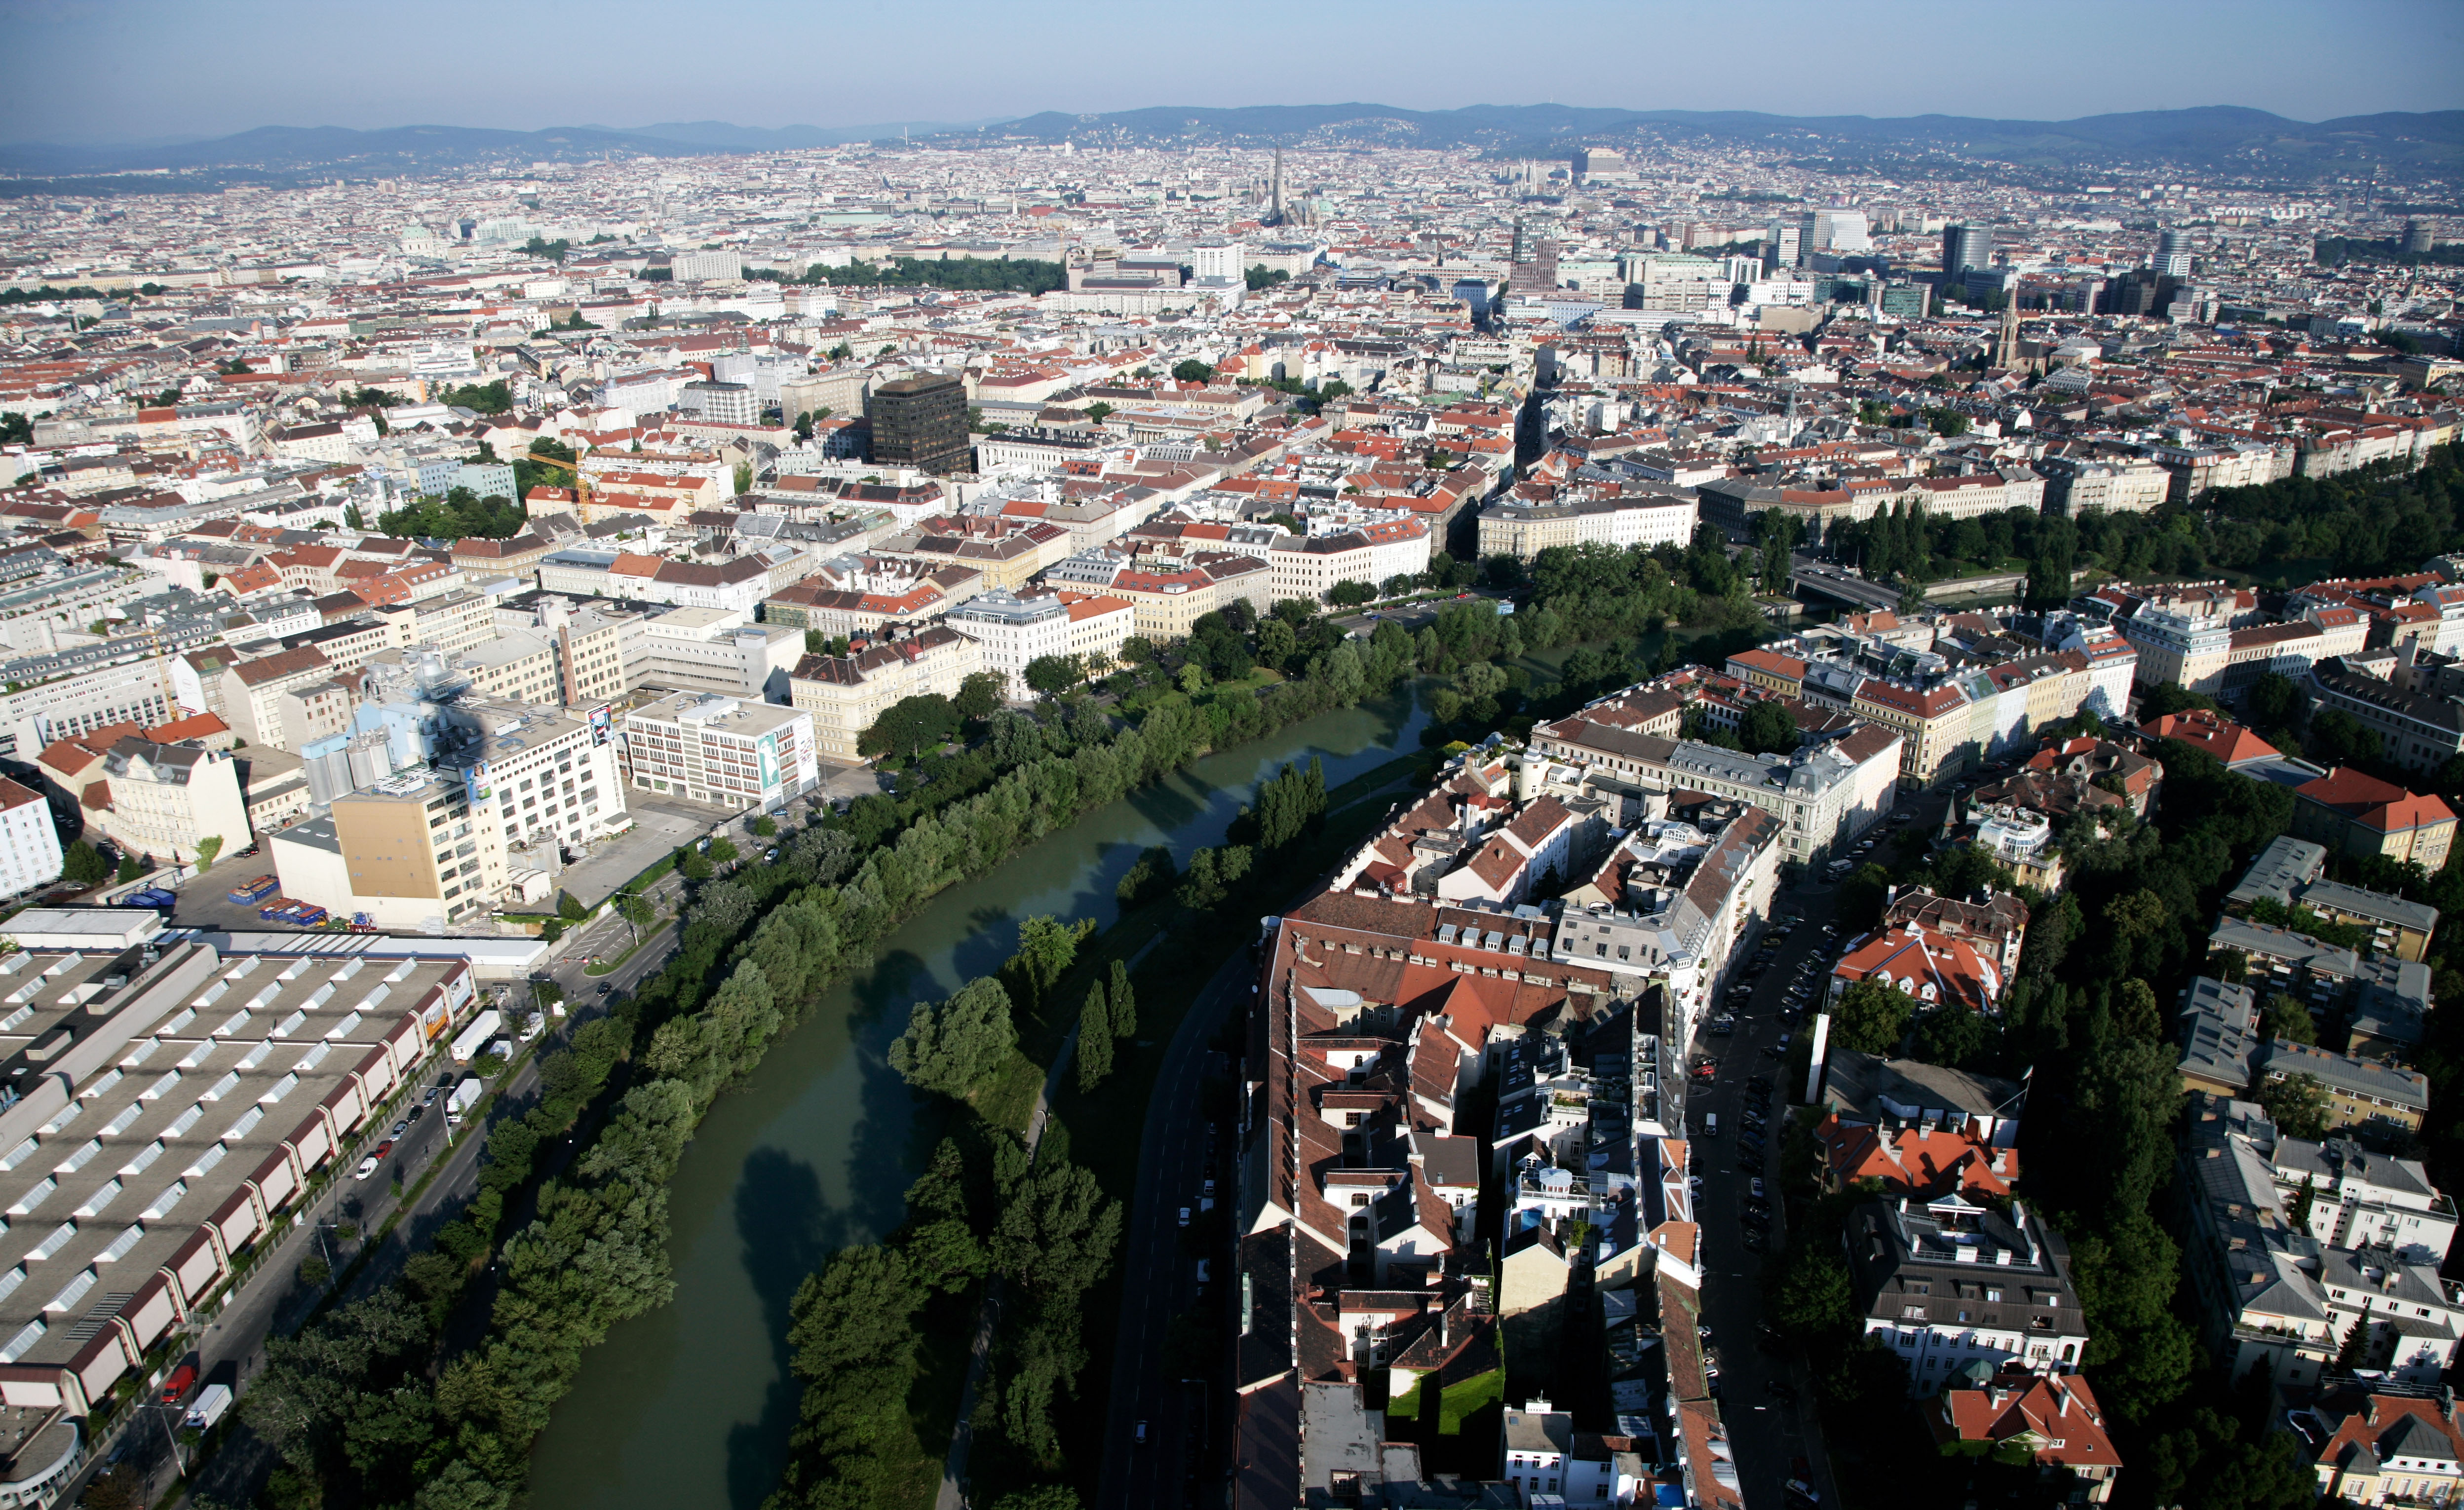 A general view of Vienna showing the River Danube on Jun. 22, 2008 in Vienna, Austria.